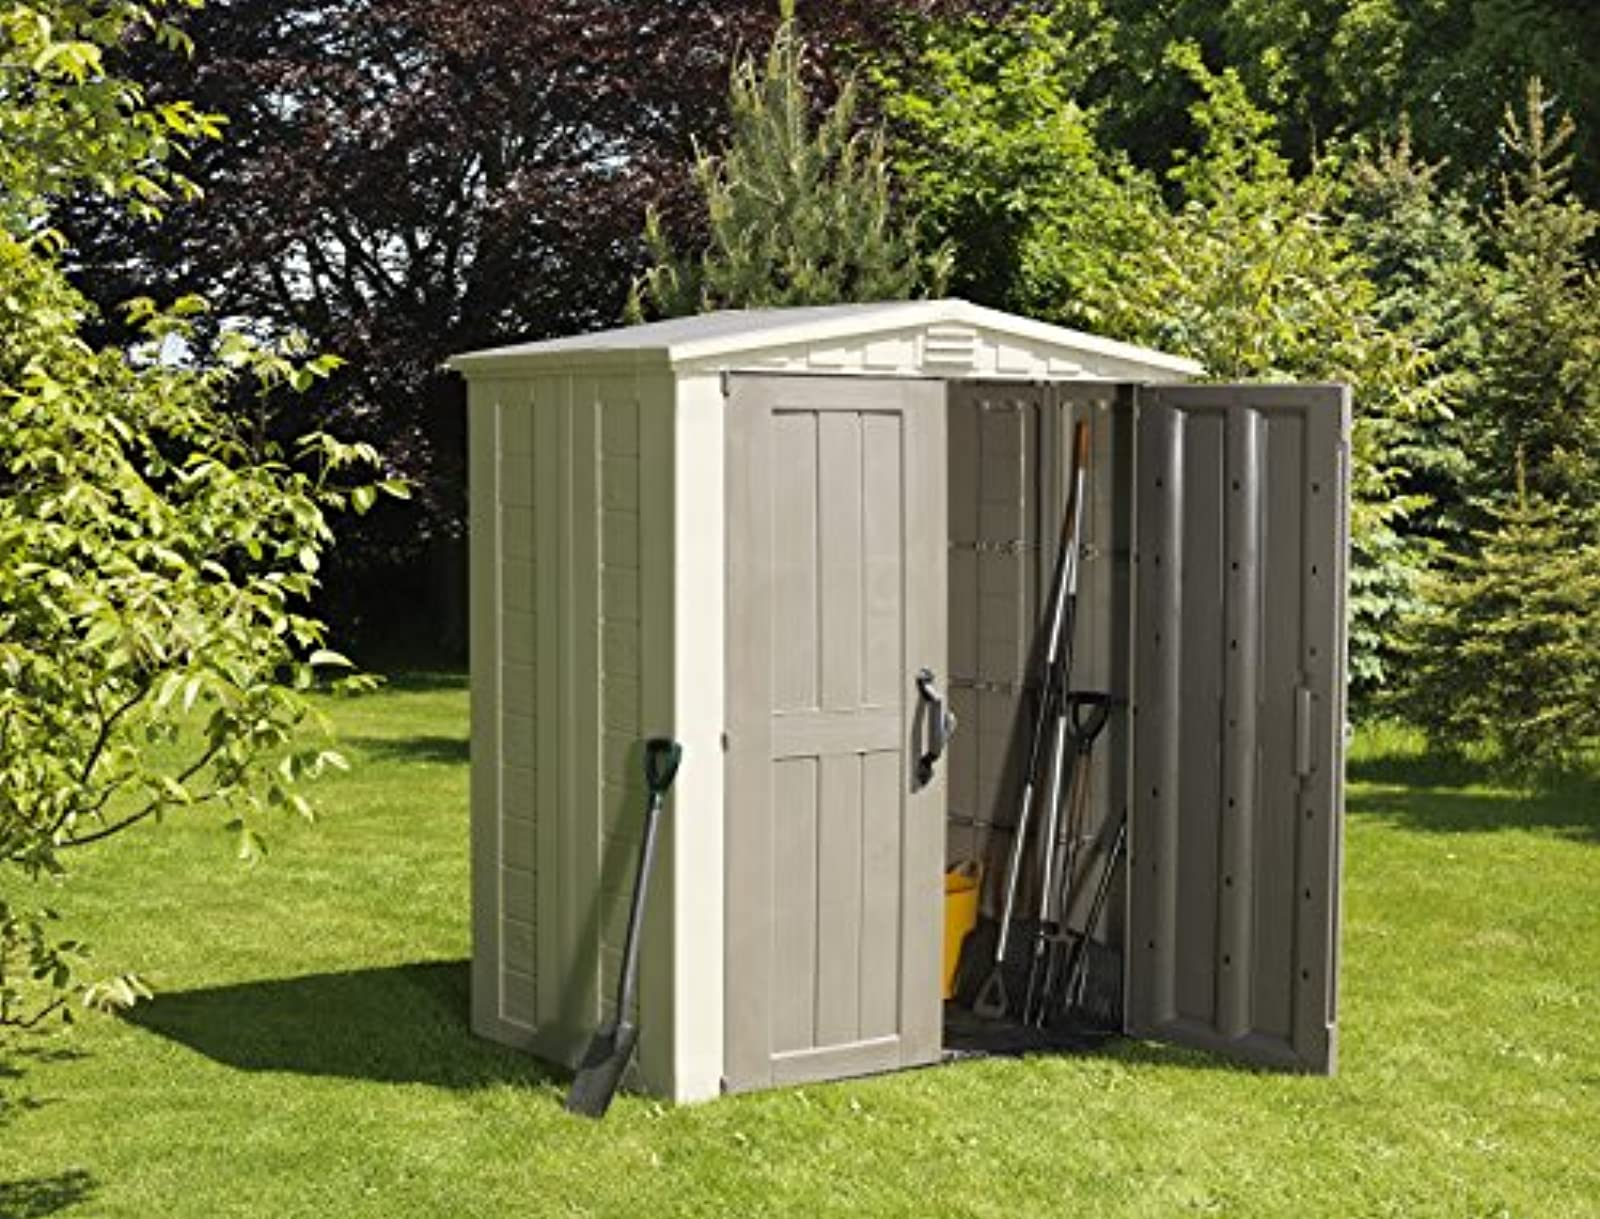 Keter factor plastic outdoor garden storage shed fade for Outdoor garden shed